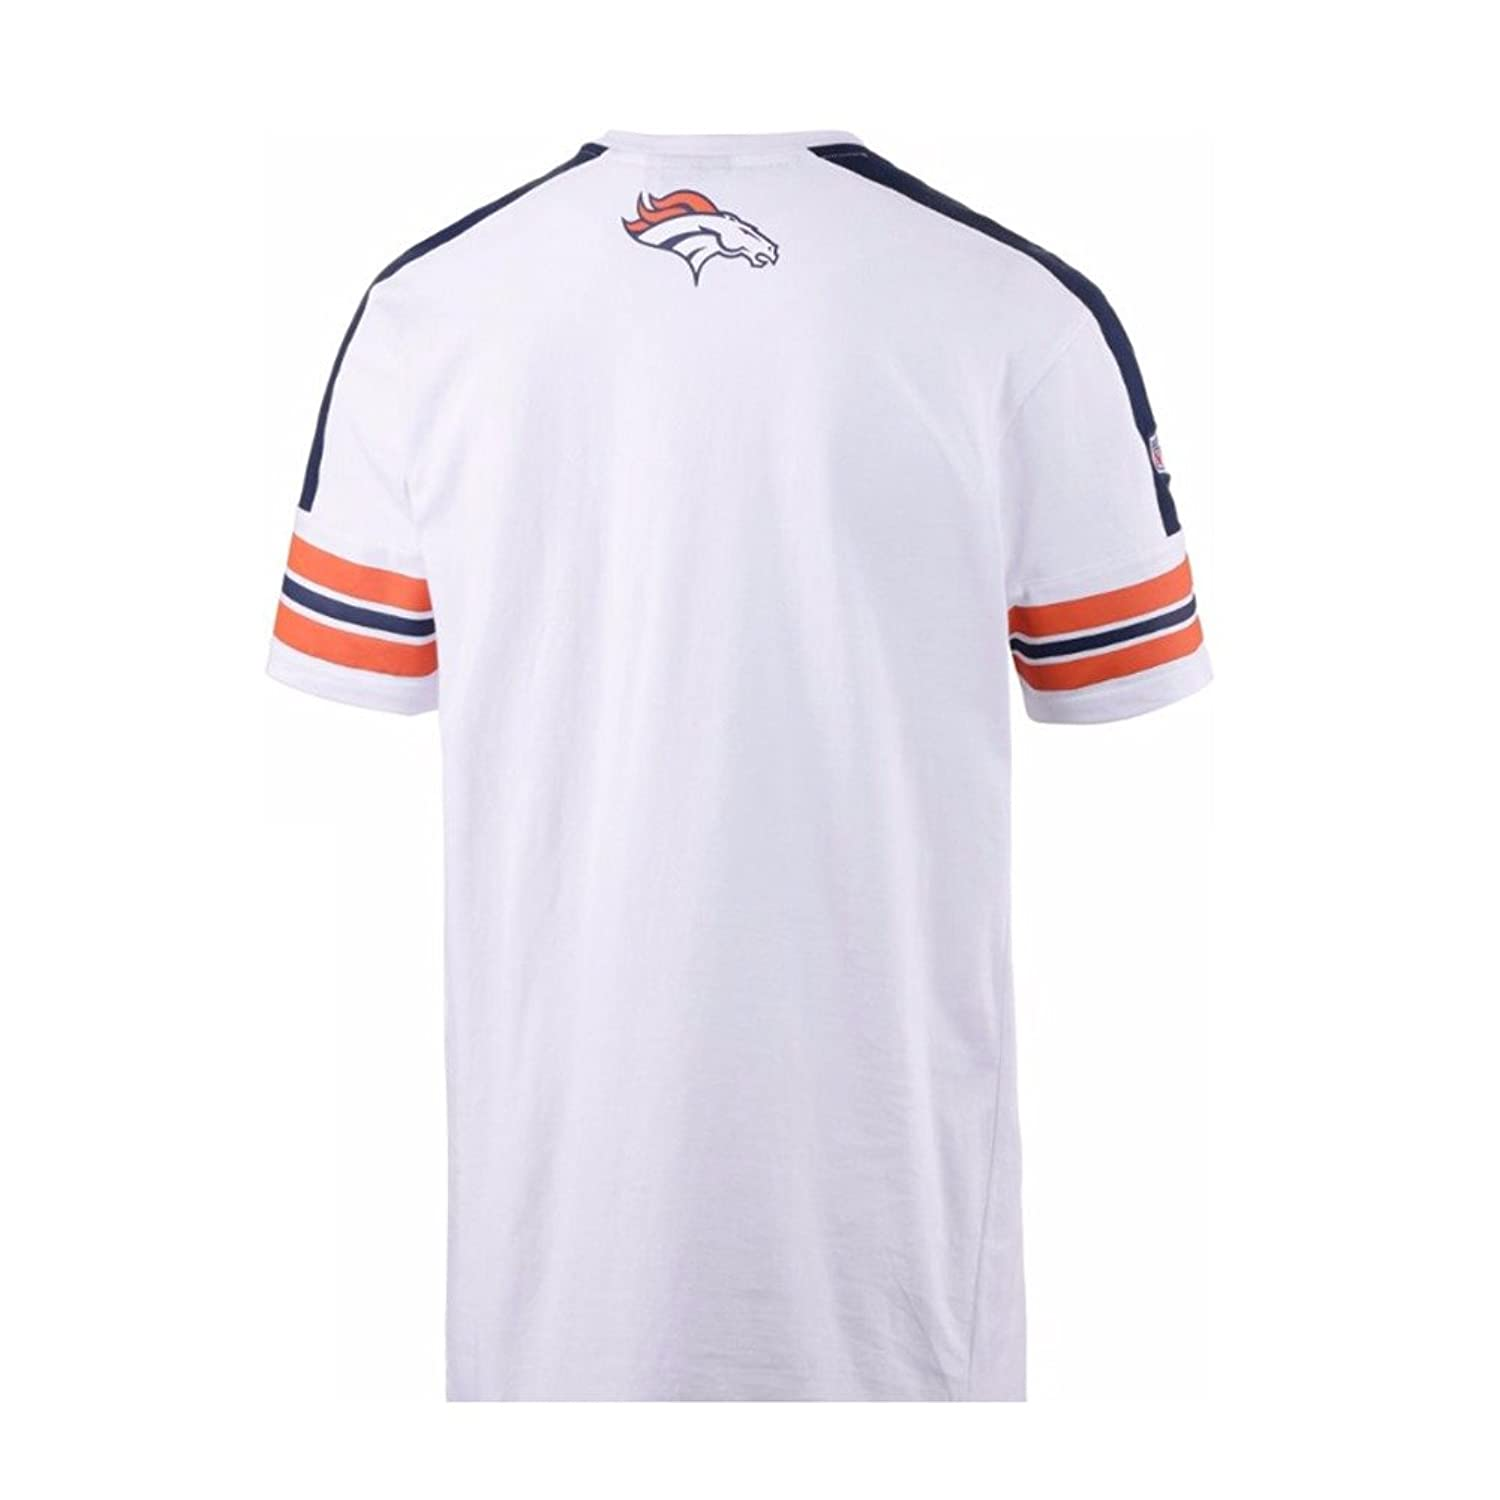 Majestic T-Shirt - Nfl Incent Coach Denver Broncos white/orange size: L (Large)